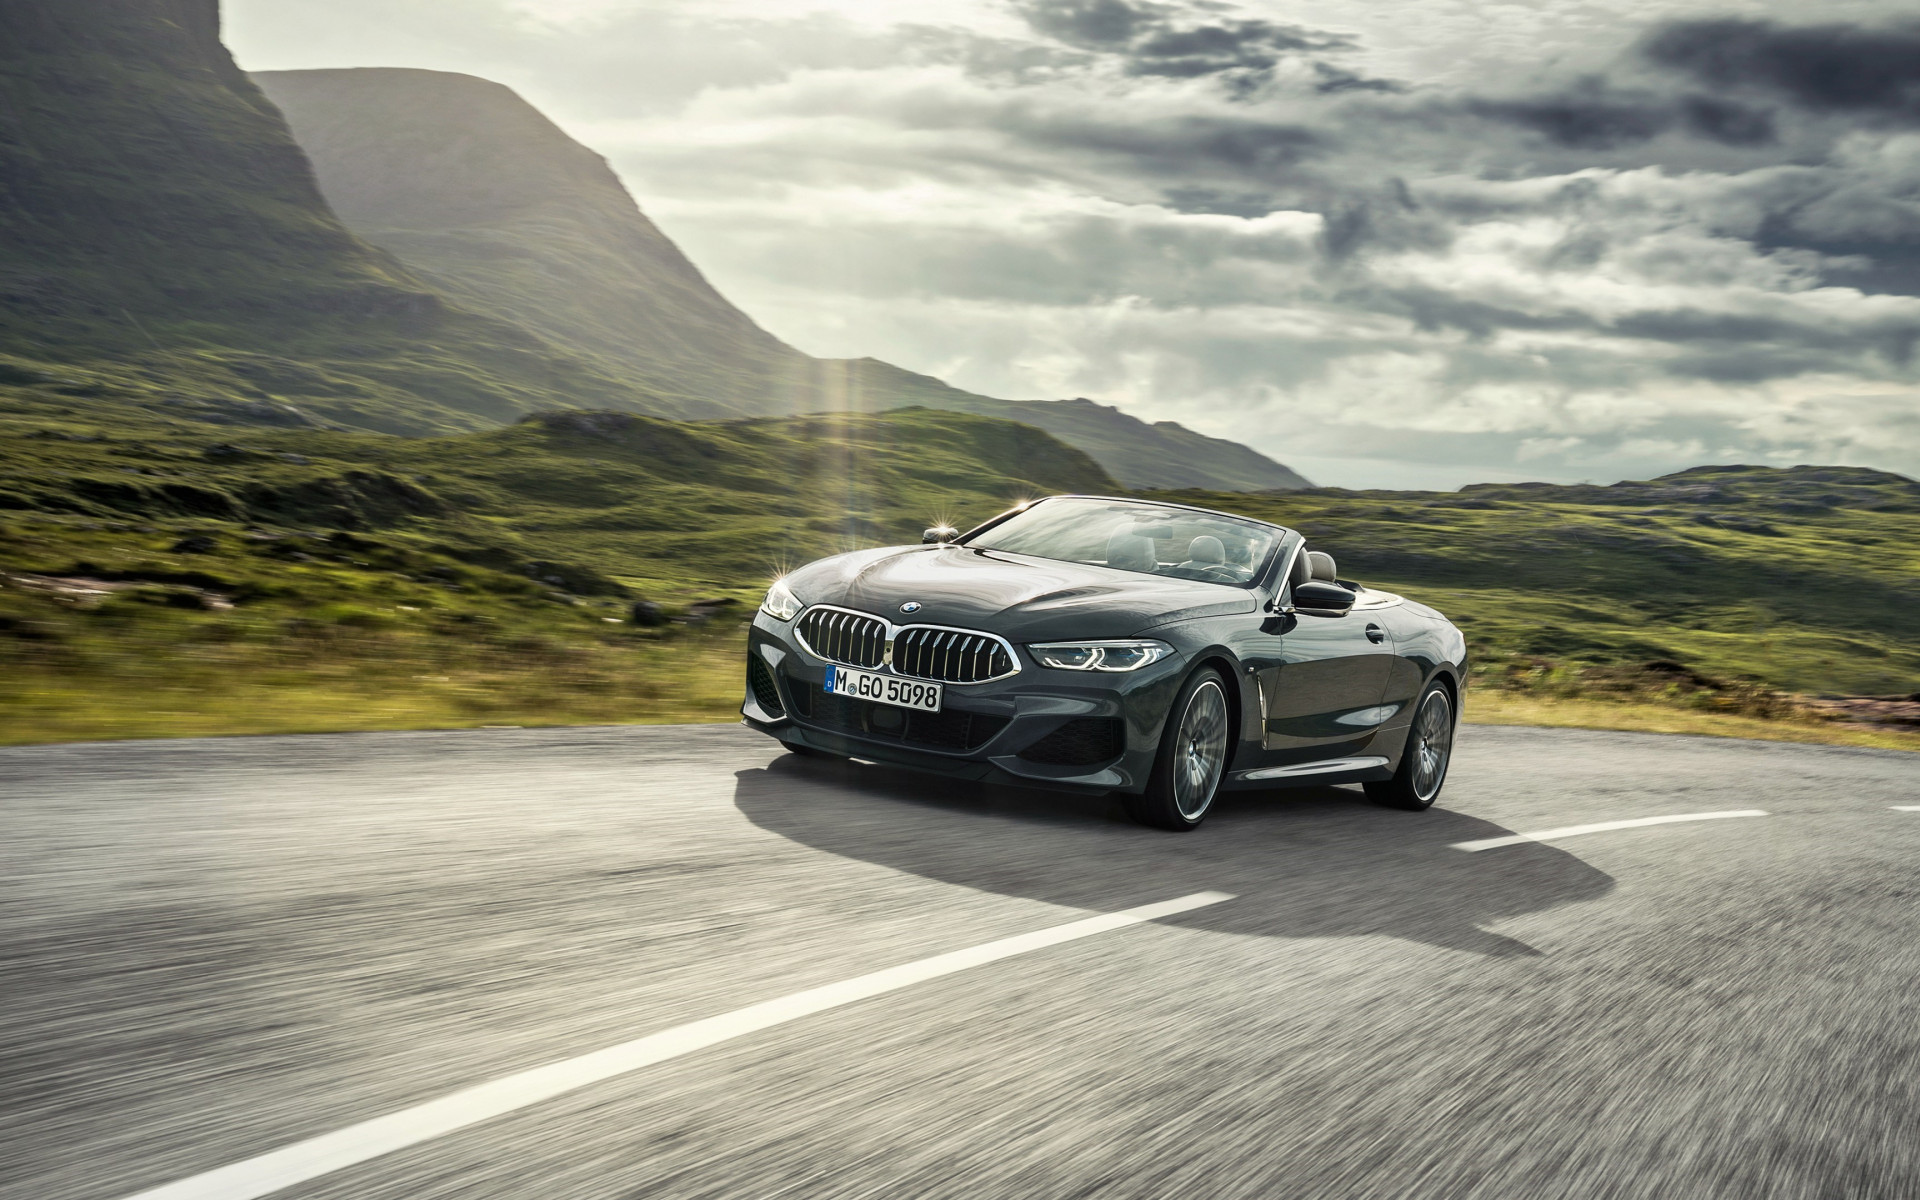 BMW 8 Series Convertible | 1920x1200 wallpaper